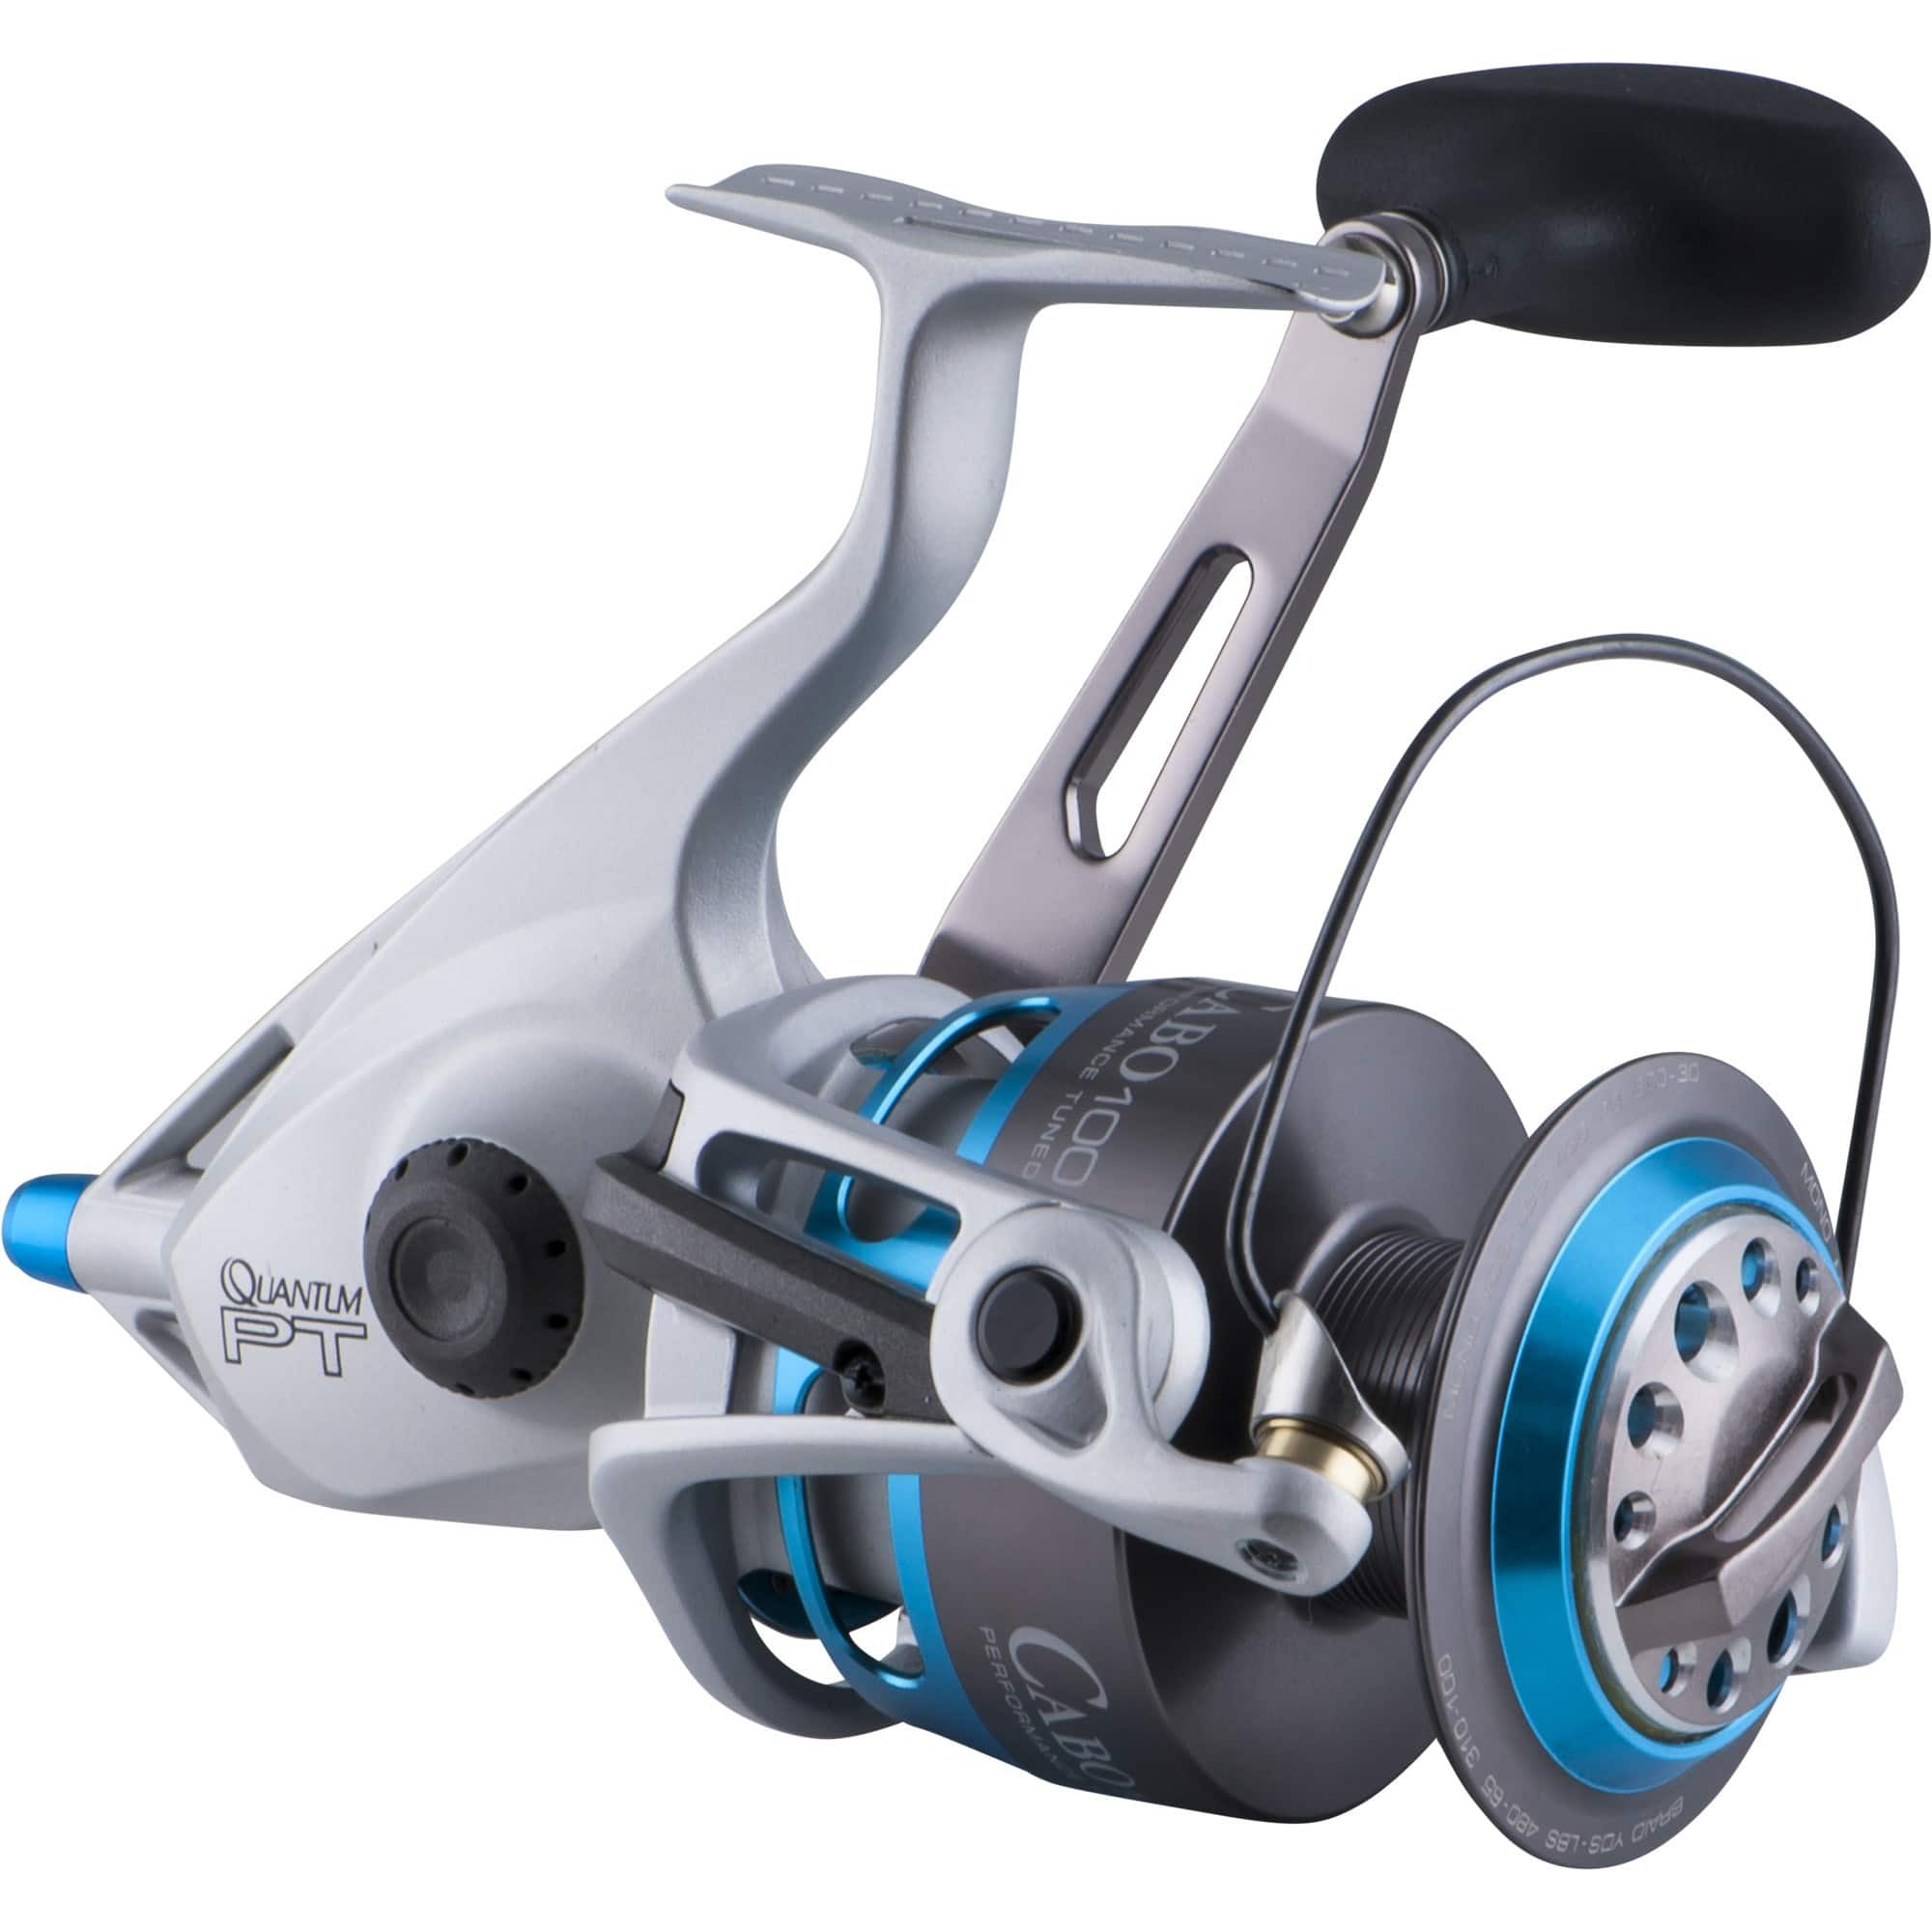 Quantum Cabo 40/50/60/80 PTSE Spinning Reels $139.99